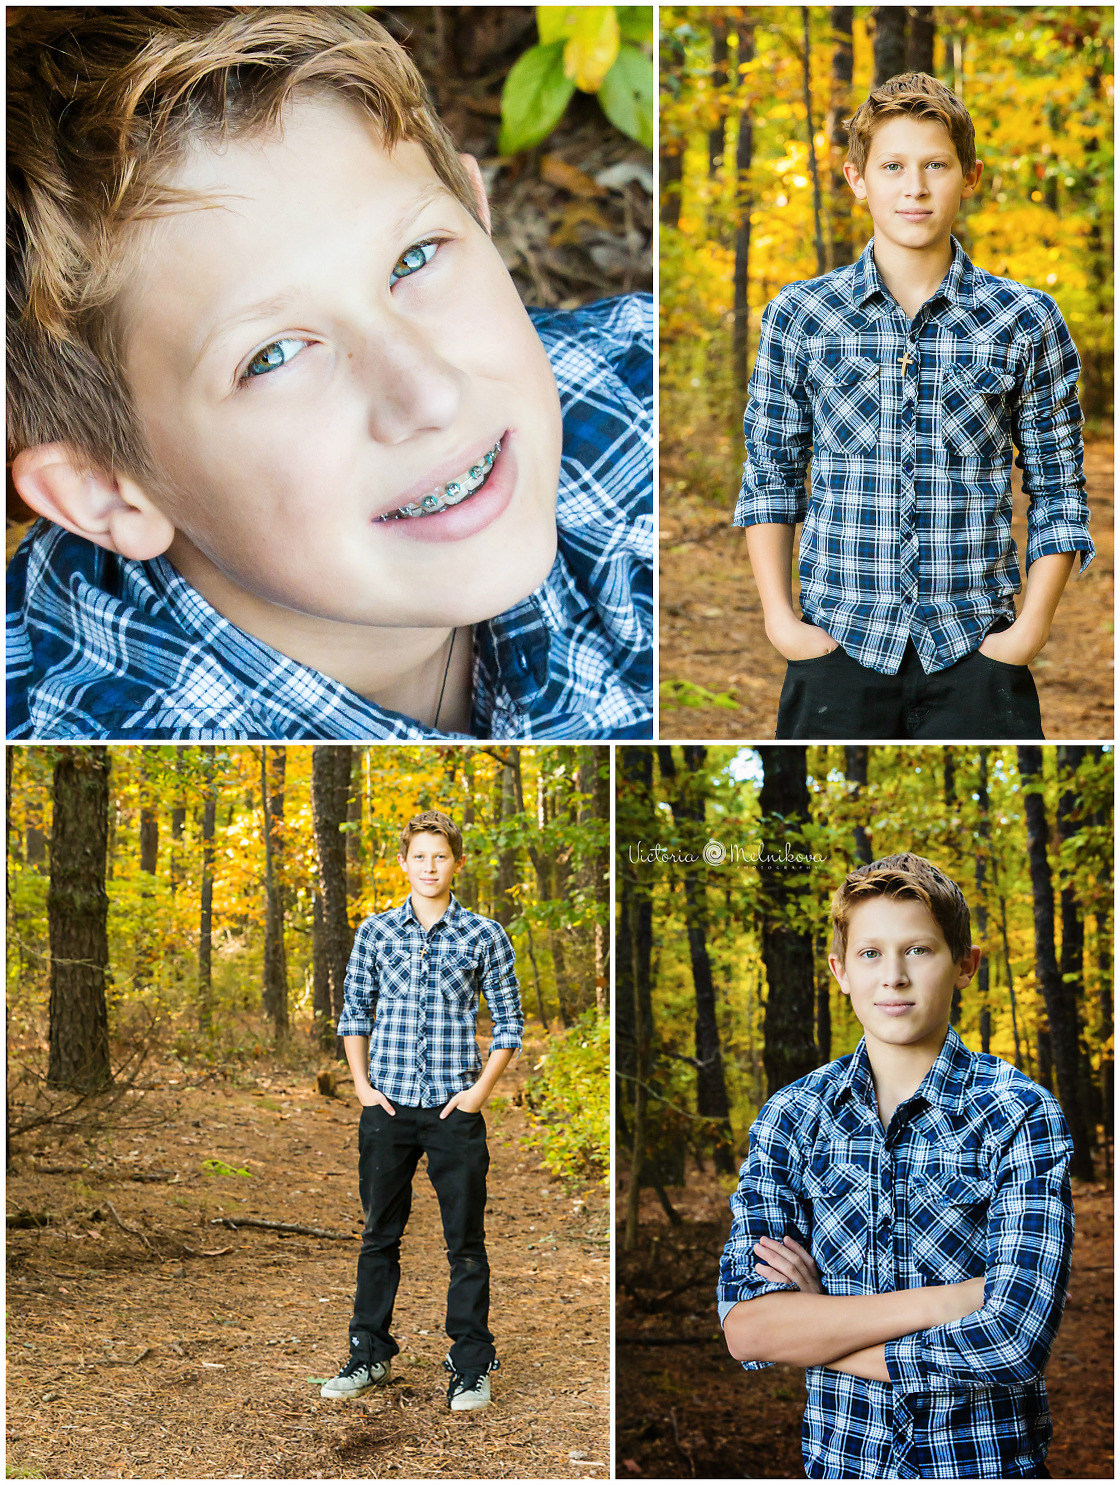 Fall young photo ideas